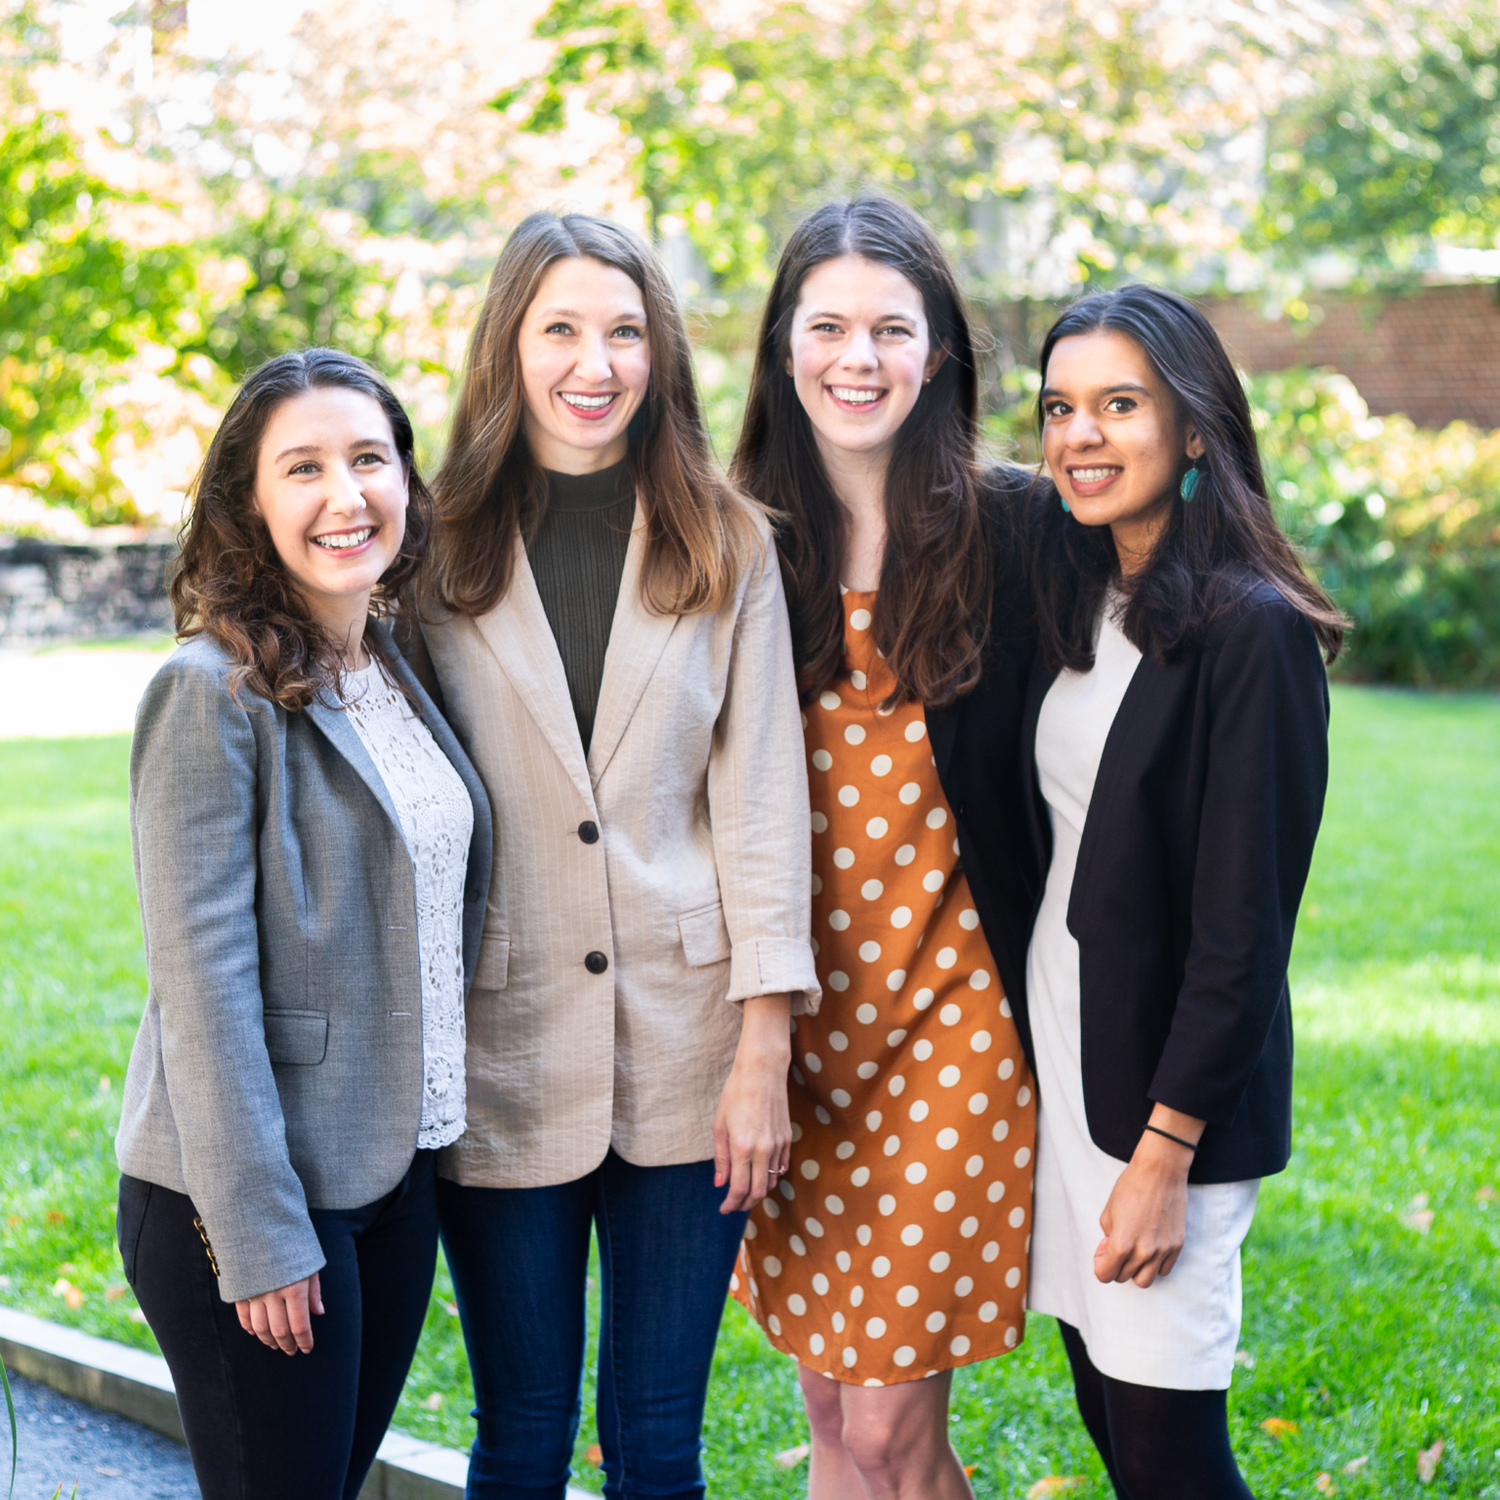 "The People's Parity Project, founded by Emma R. Janger, Molly M. E. Coleman, Alexandra ""Vail"" Kohnert-Yount, and Sejal Singh, is a student organization that aims to end harassment and discrimination in the justice system."